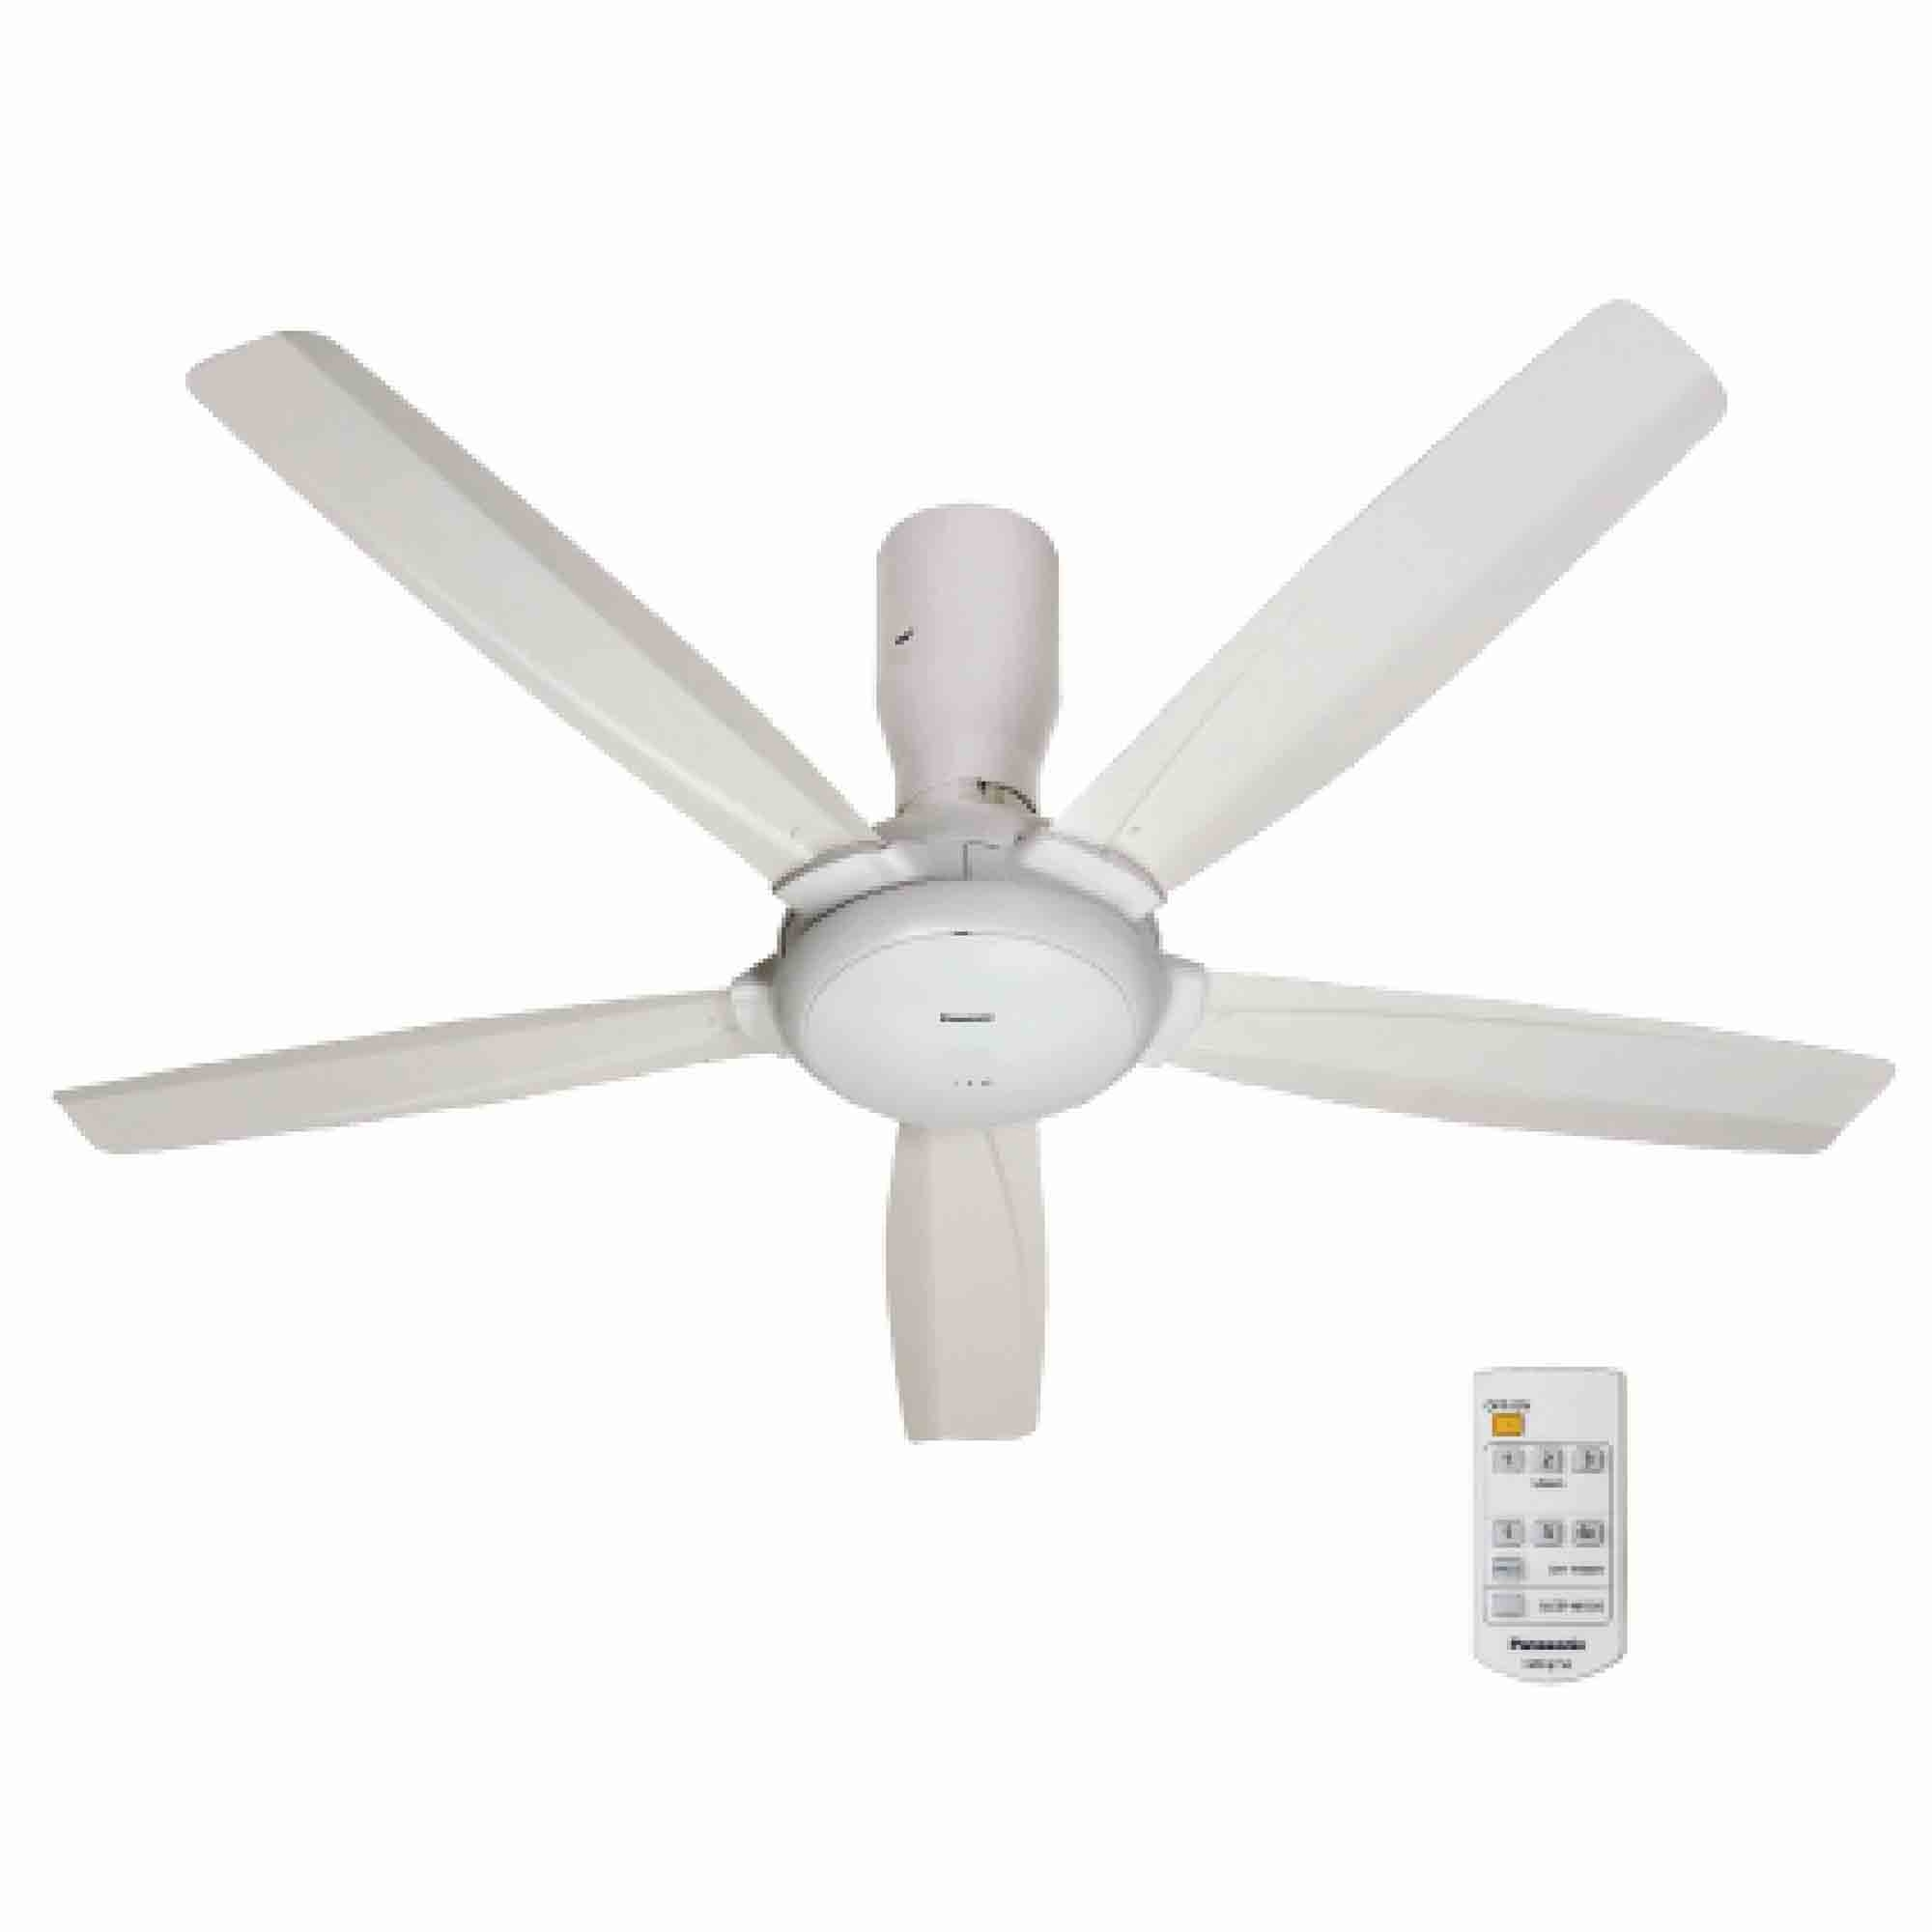 pm description ceilings i end sjkelectrical htm product panasonic inch sale fan f inc bayu ceiling